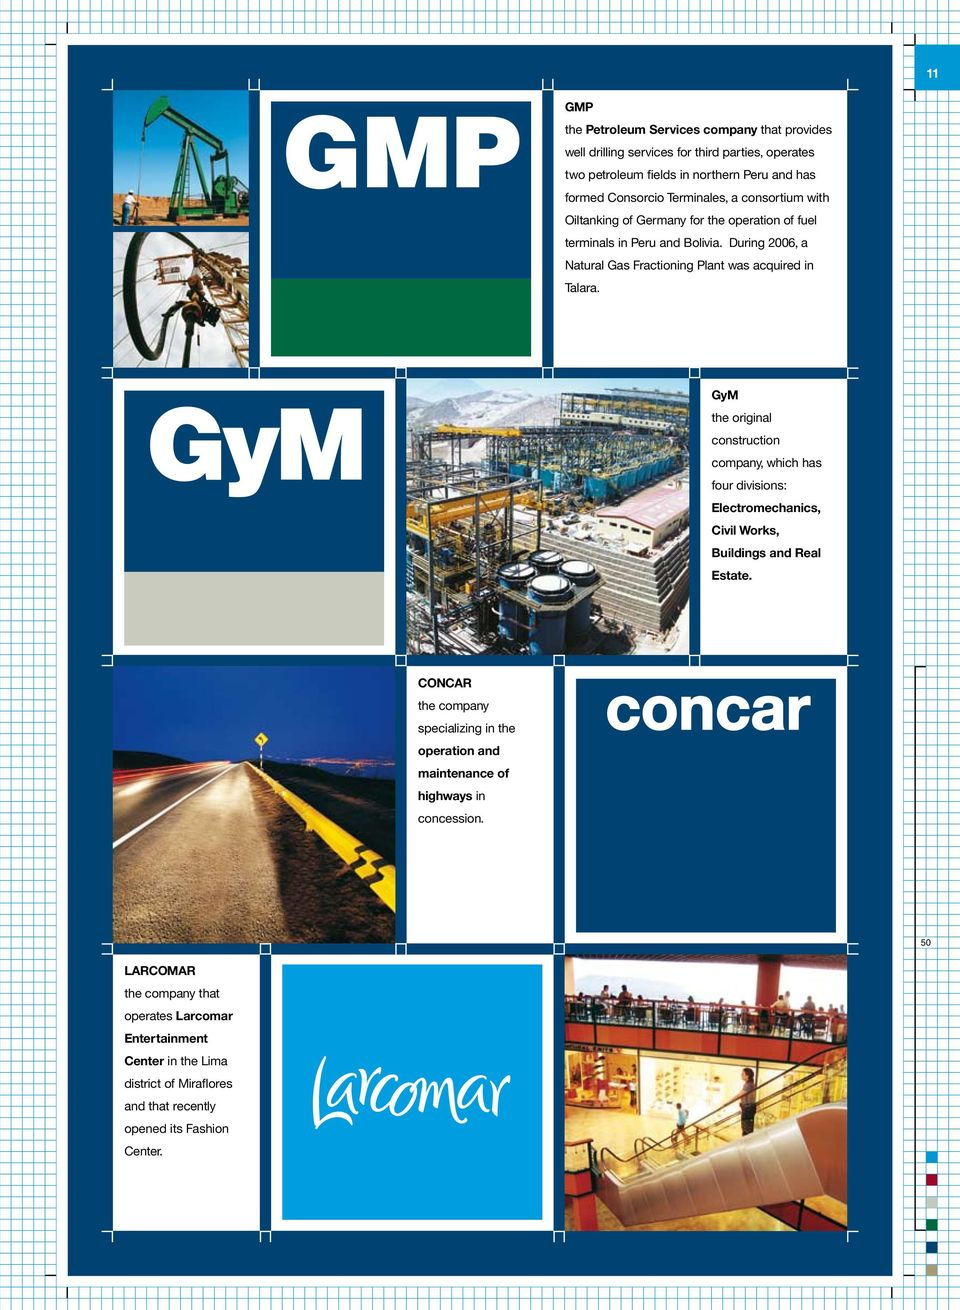 GyM the original construction company, which has four divisions: Electromechanics, Civil Works, Buildings and Real Estate.